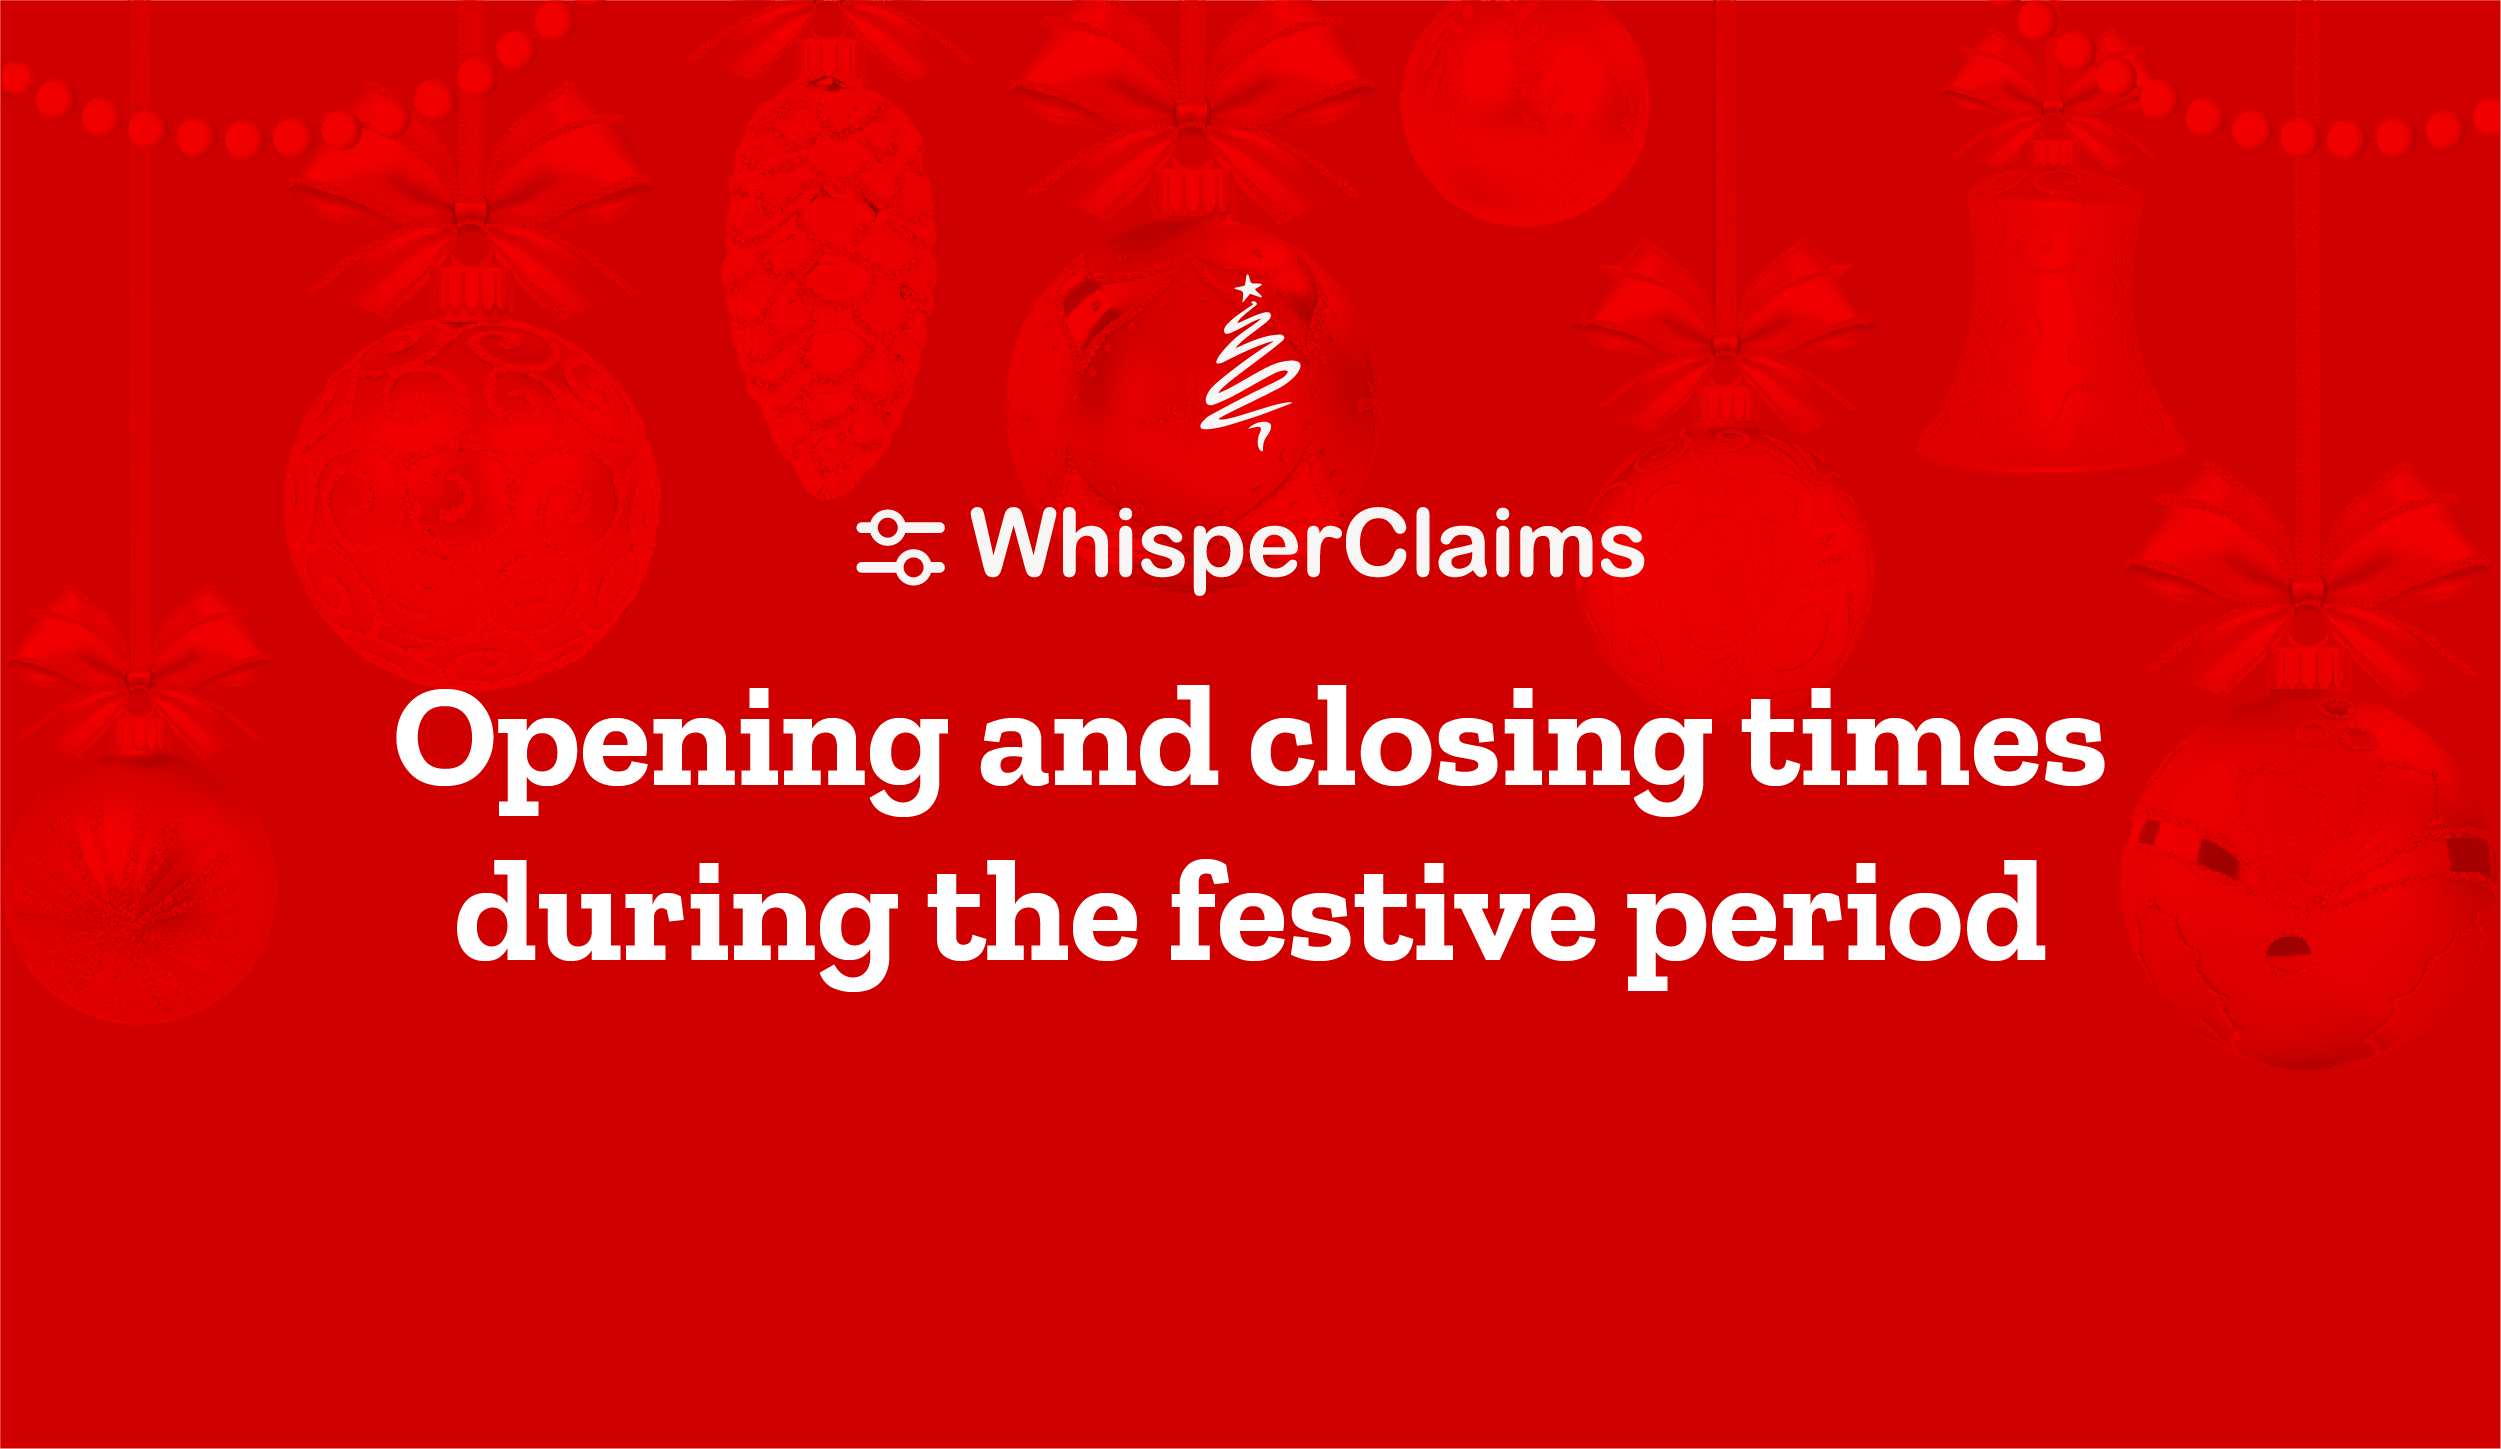 Christmas opening times at WhisperClaims